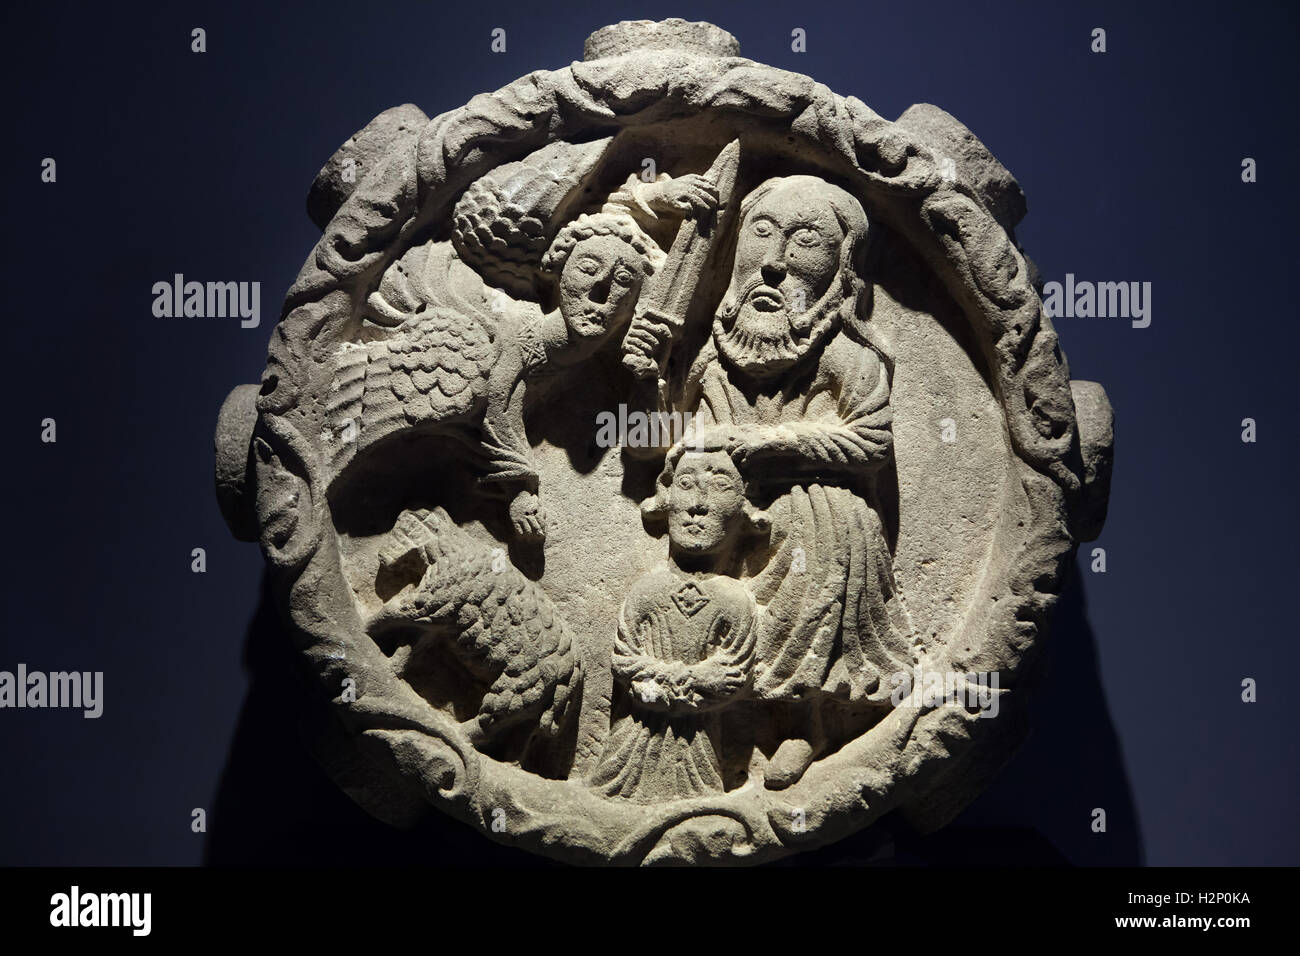 Sacrifice of Isaac. Romanesque relief from circa 1220-1230 from the Sauve-Majeure Abbey in Gironde, currently displayed - Stock Image